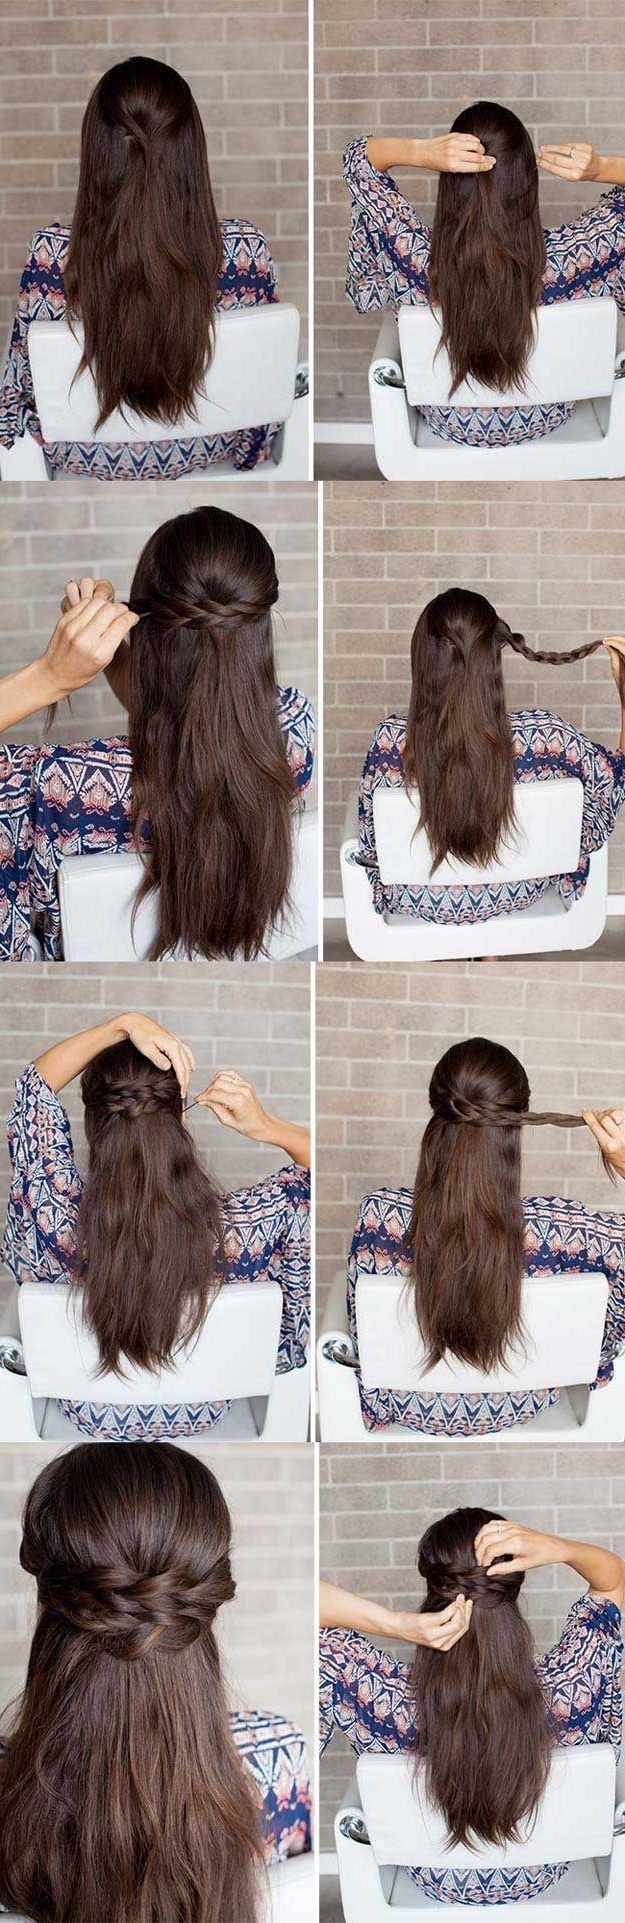 Hairstyles With Famous Midi Half Up Half Down Ponytail Hairstyles (View 14 of 20)